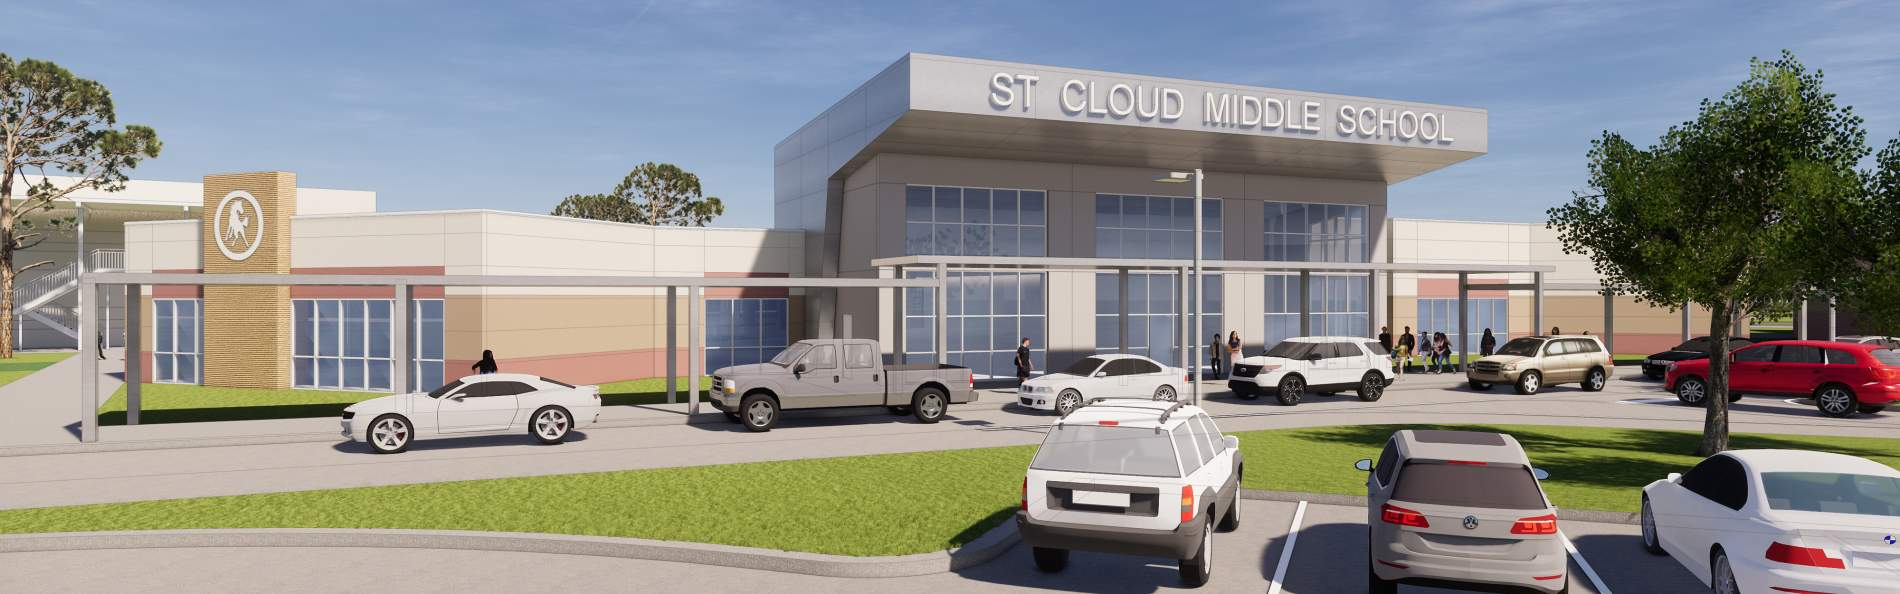 St Cloud Middle School by Clancy & Theys Construction Company